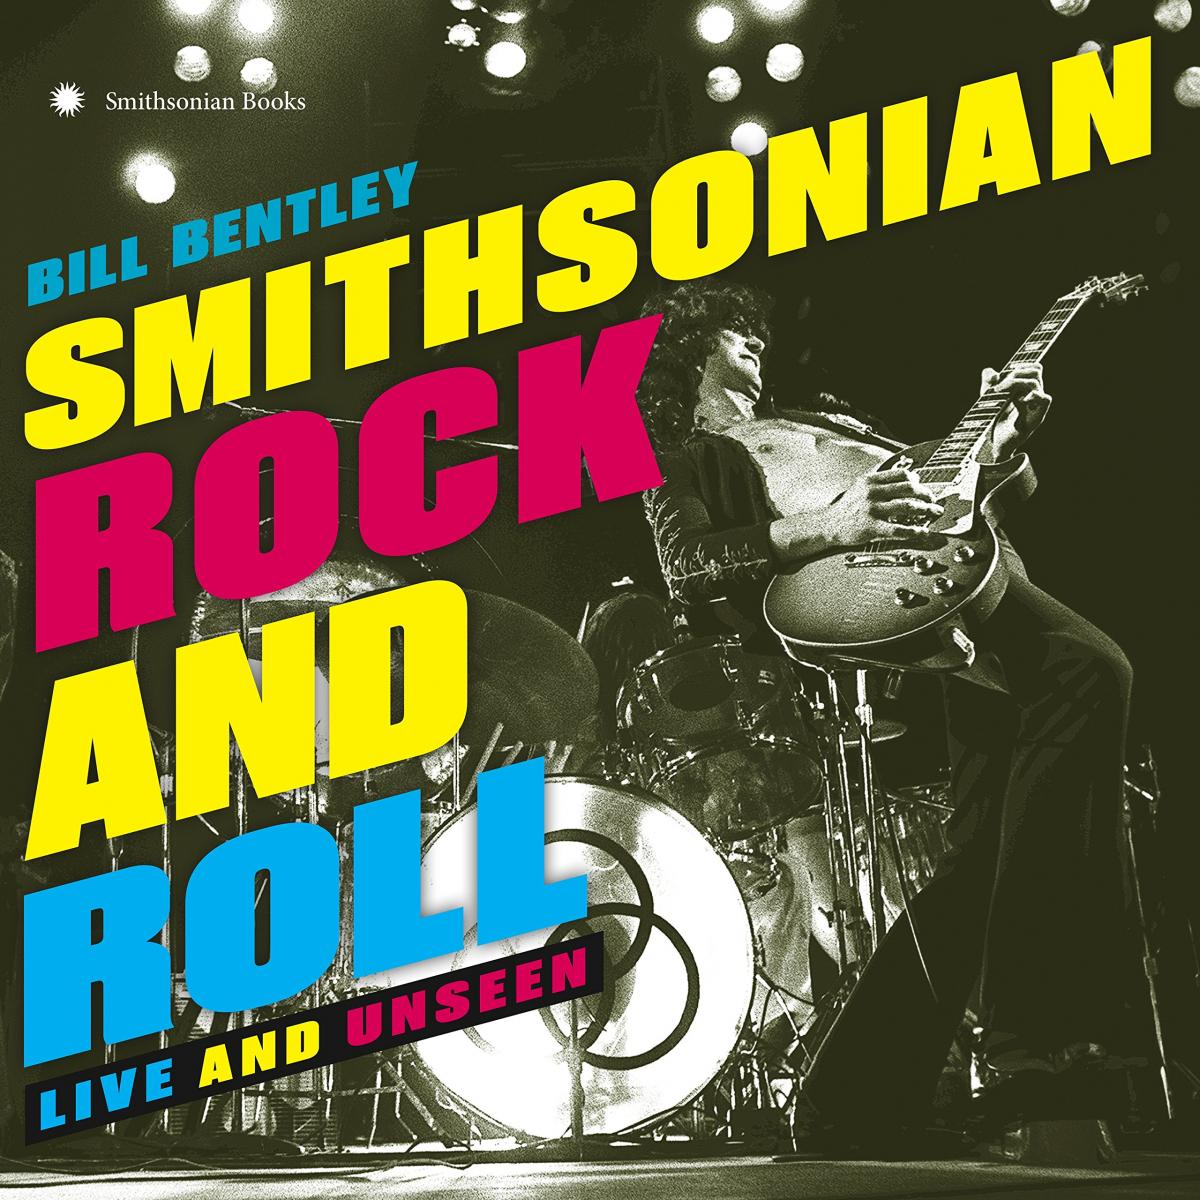 Cover, Rock and Roll: Live and Unseen, by Bill Bentley, Smithsonian Books, 2017